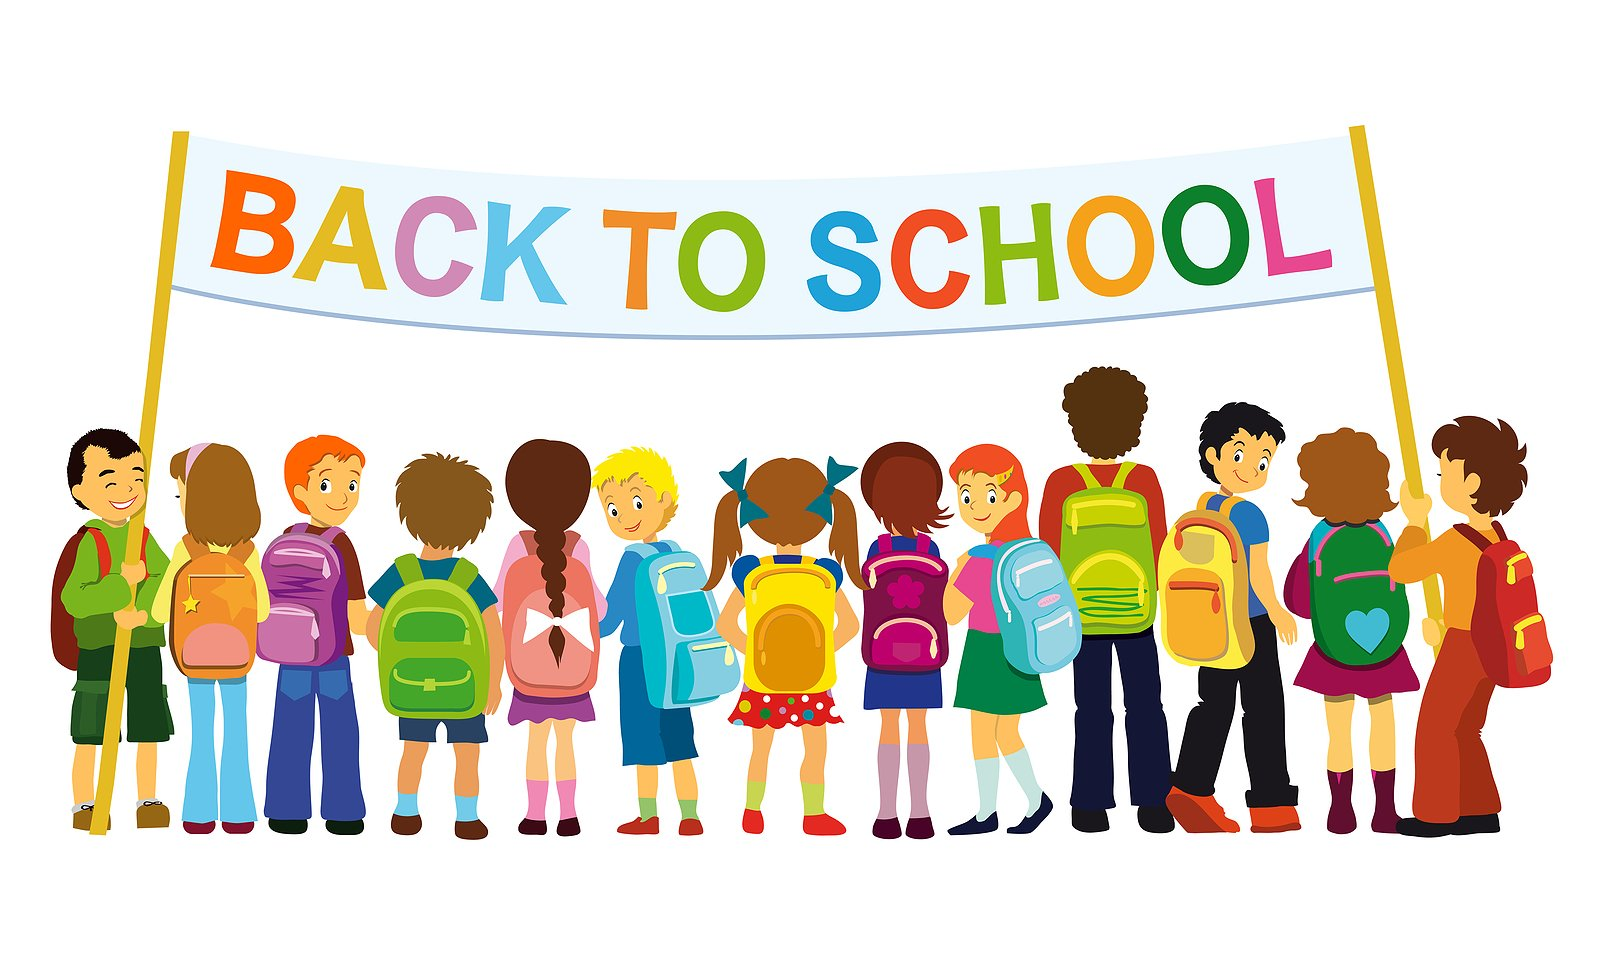 Welcome-back-to-school-clip-art-cliparts-and-others-inspiration